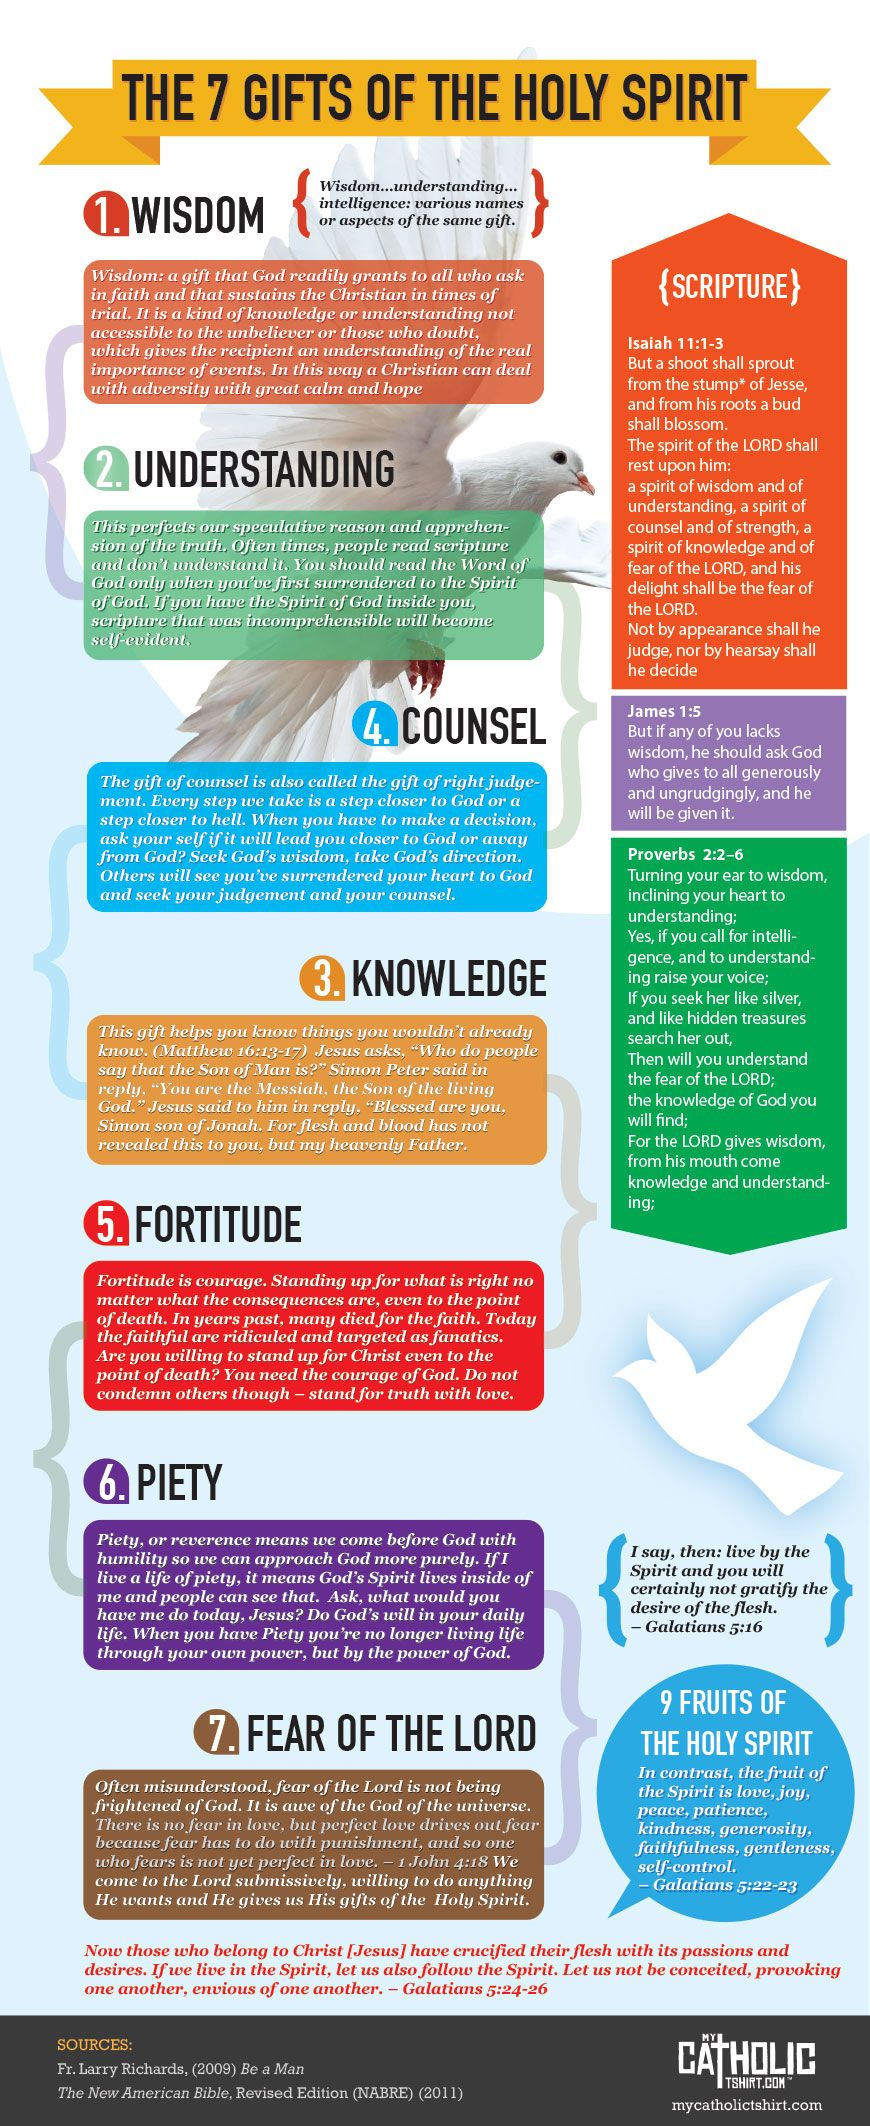 The 7 gifts of the Holy Spirit [Infographic] | My Catholic